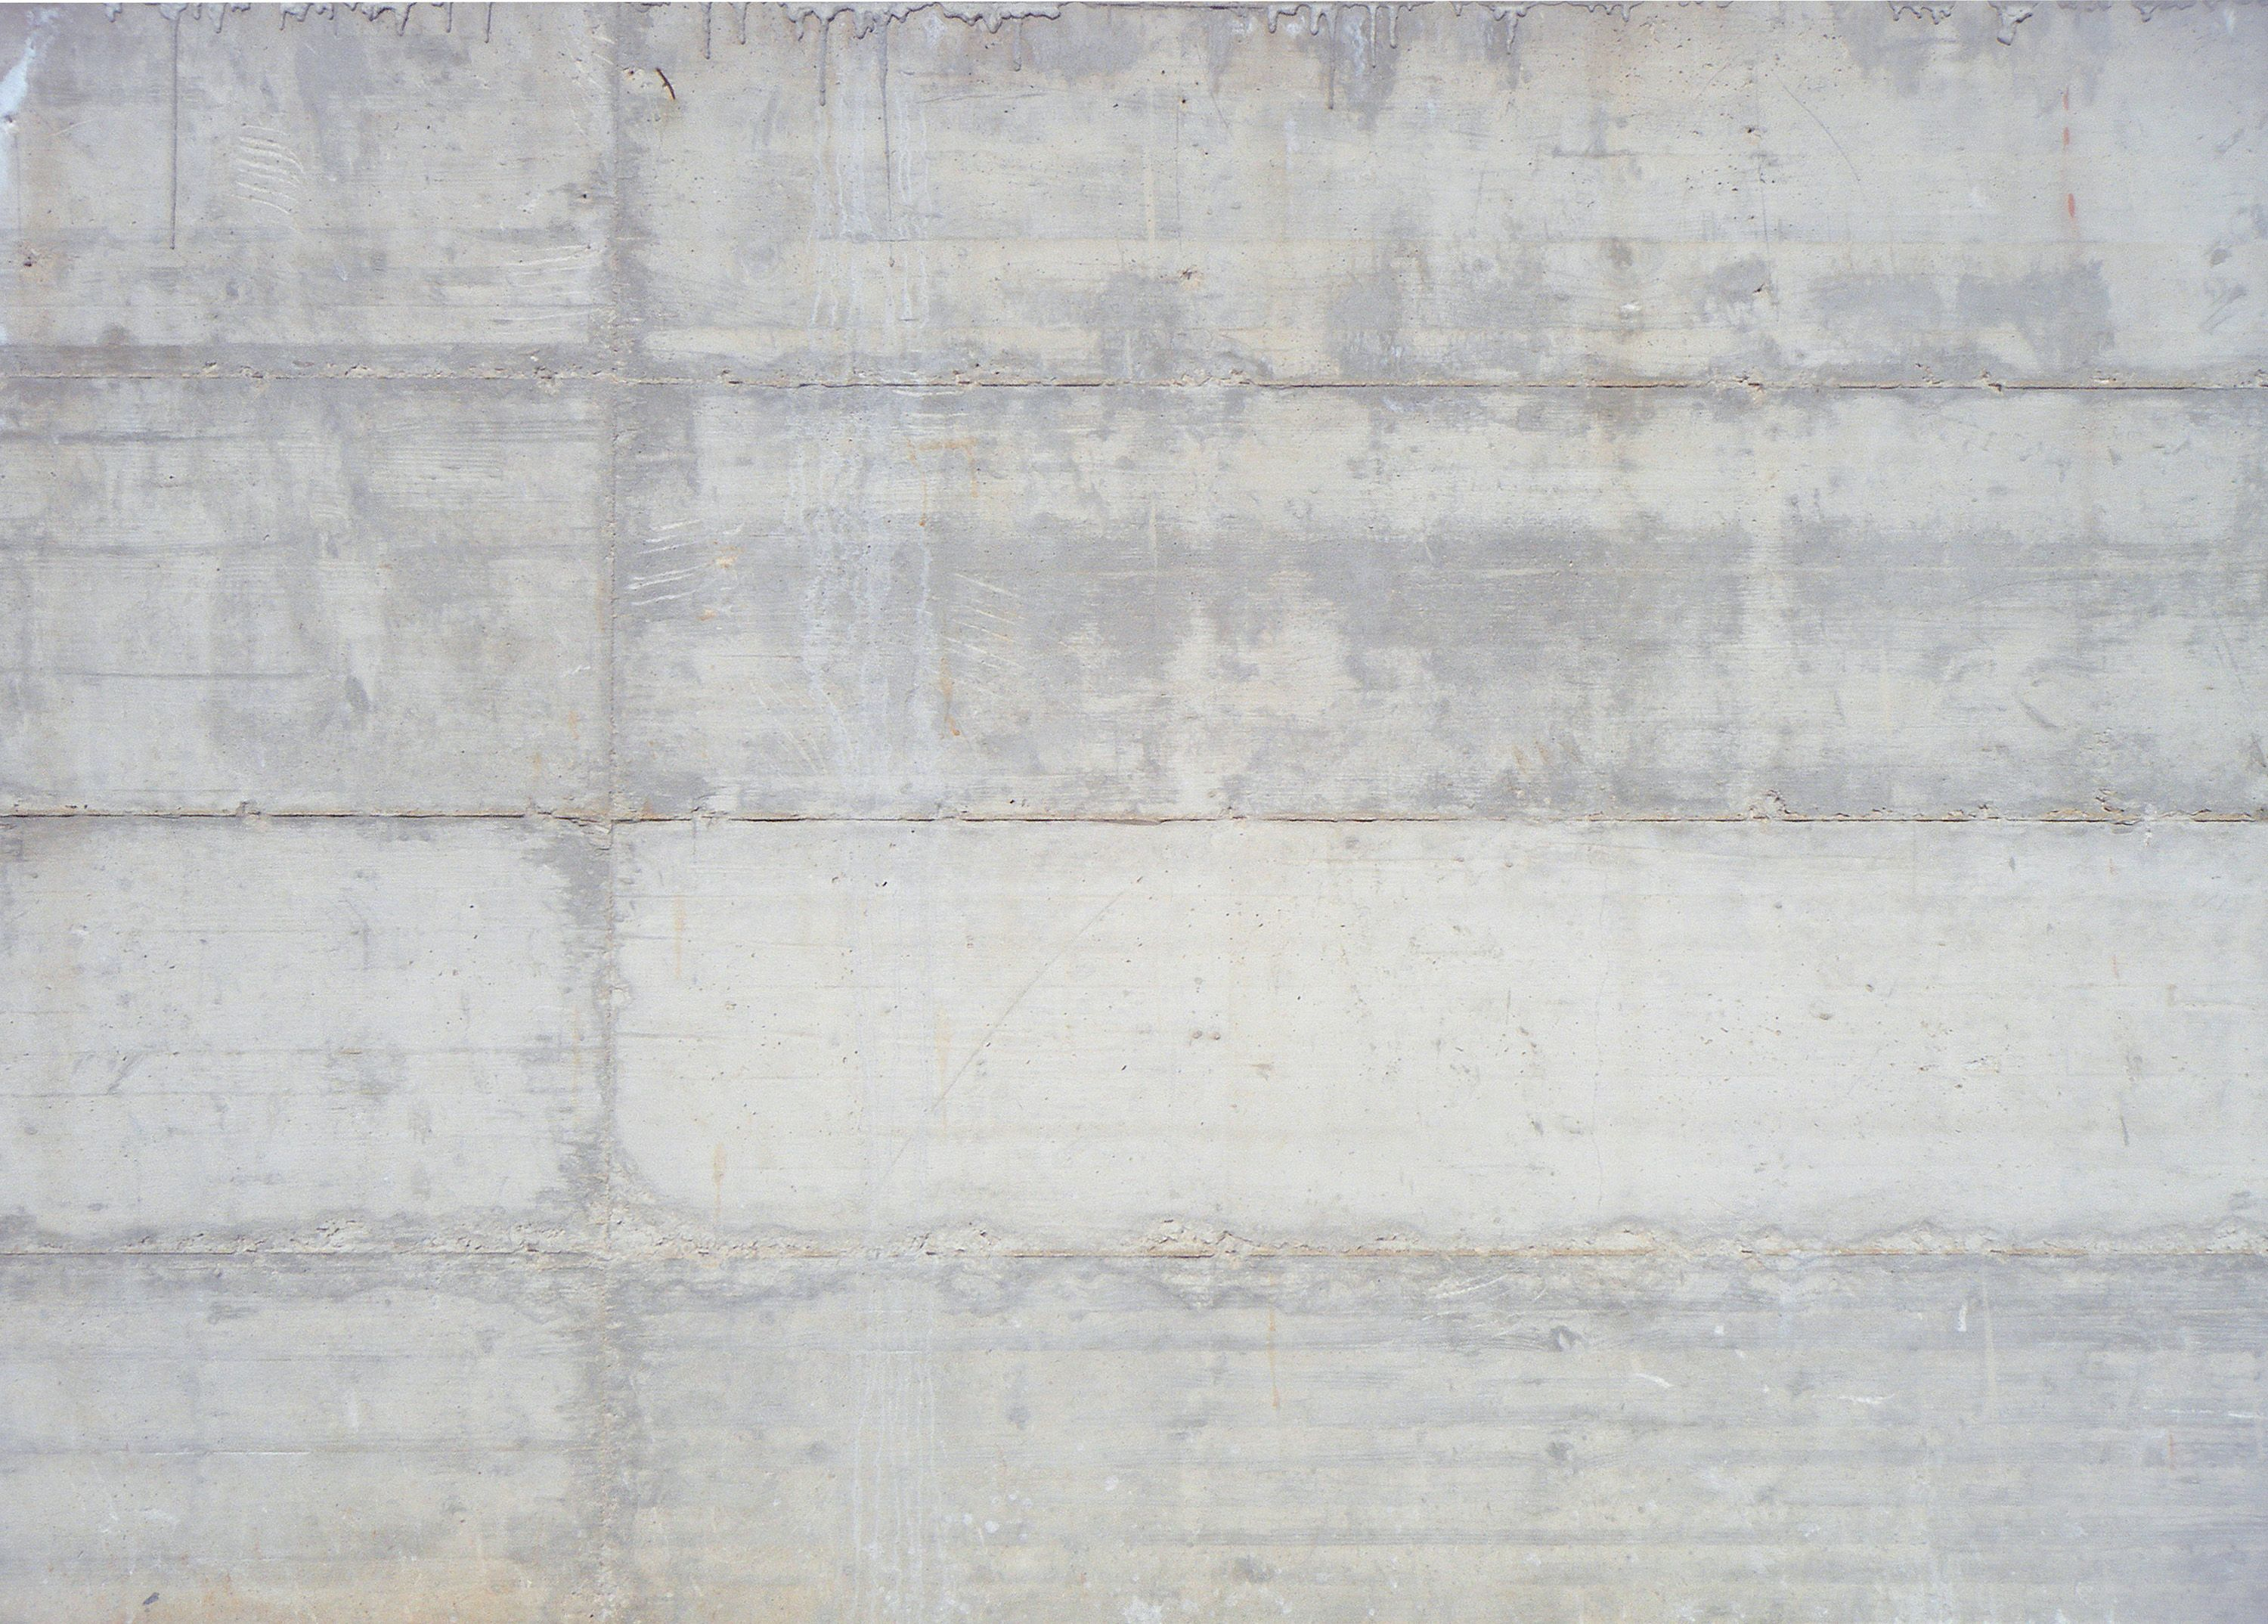 diy concrete large tiles google search concrete walls